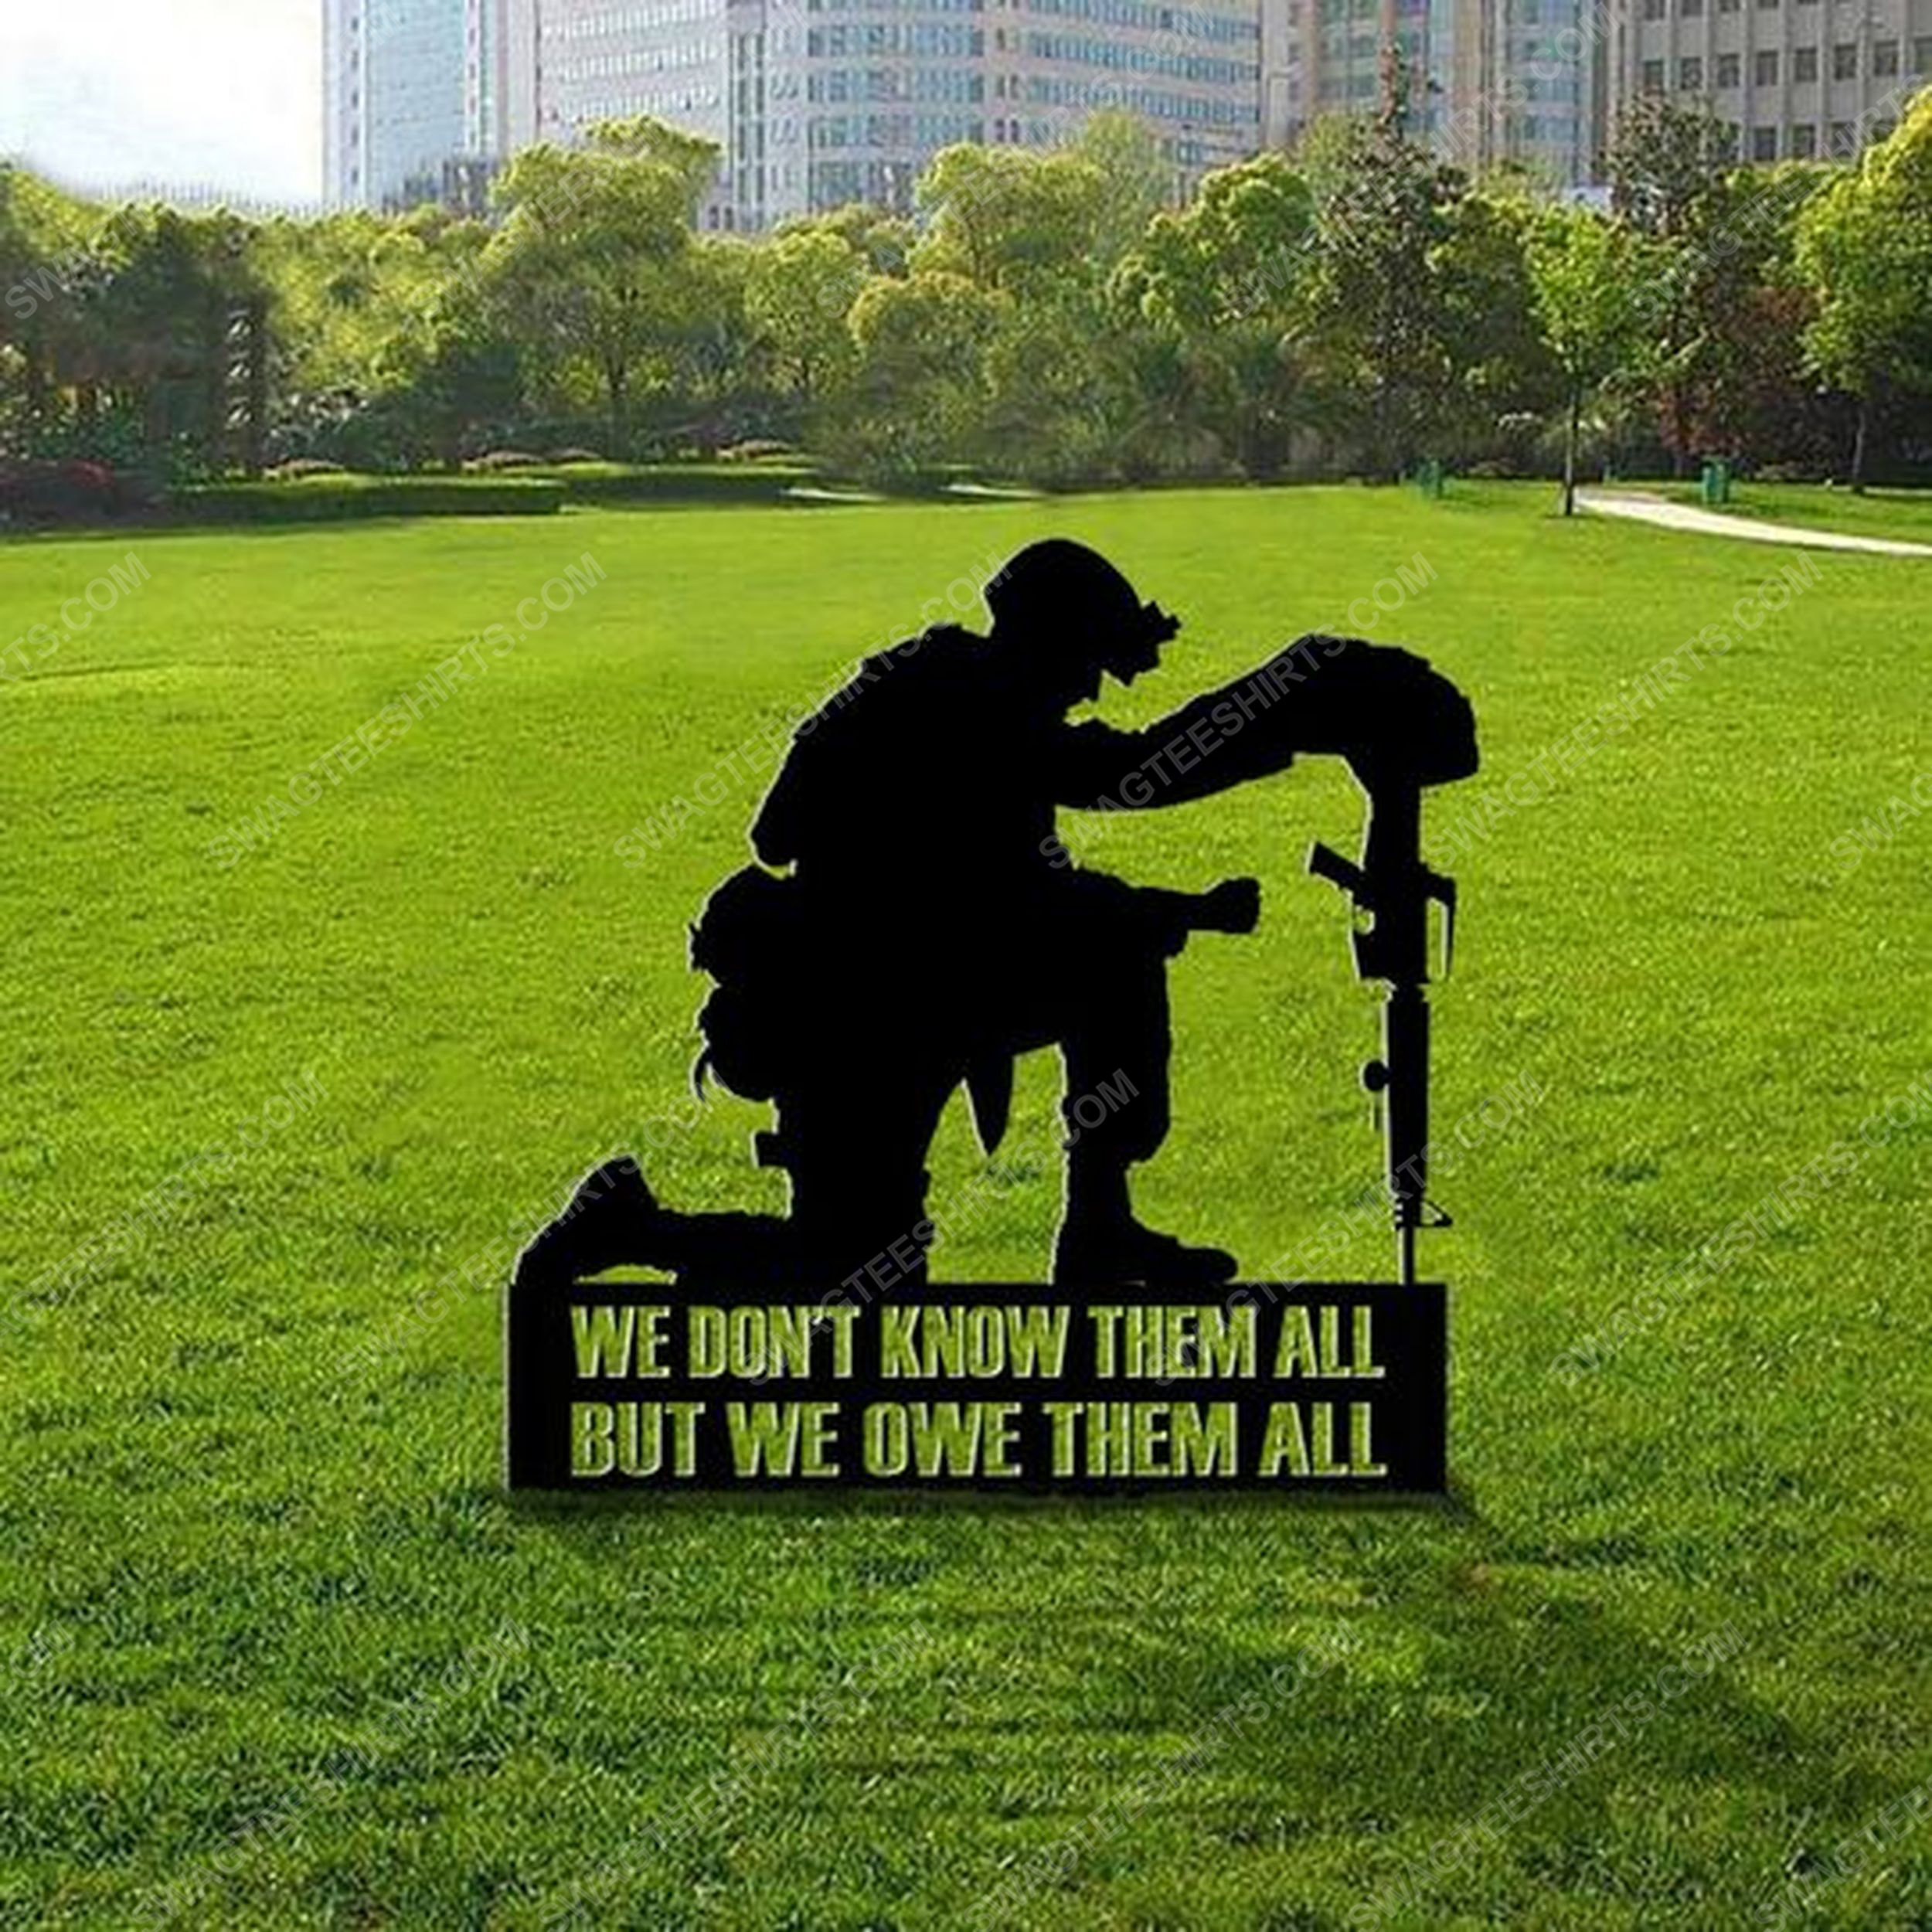 We don't know them all but we owe them all military memorial day yard sign 4(1)